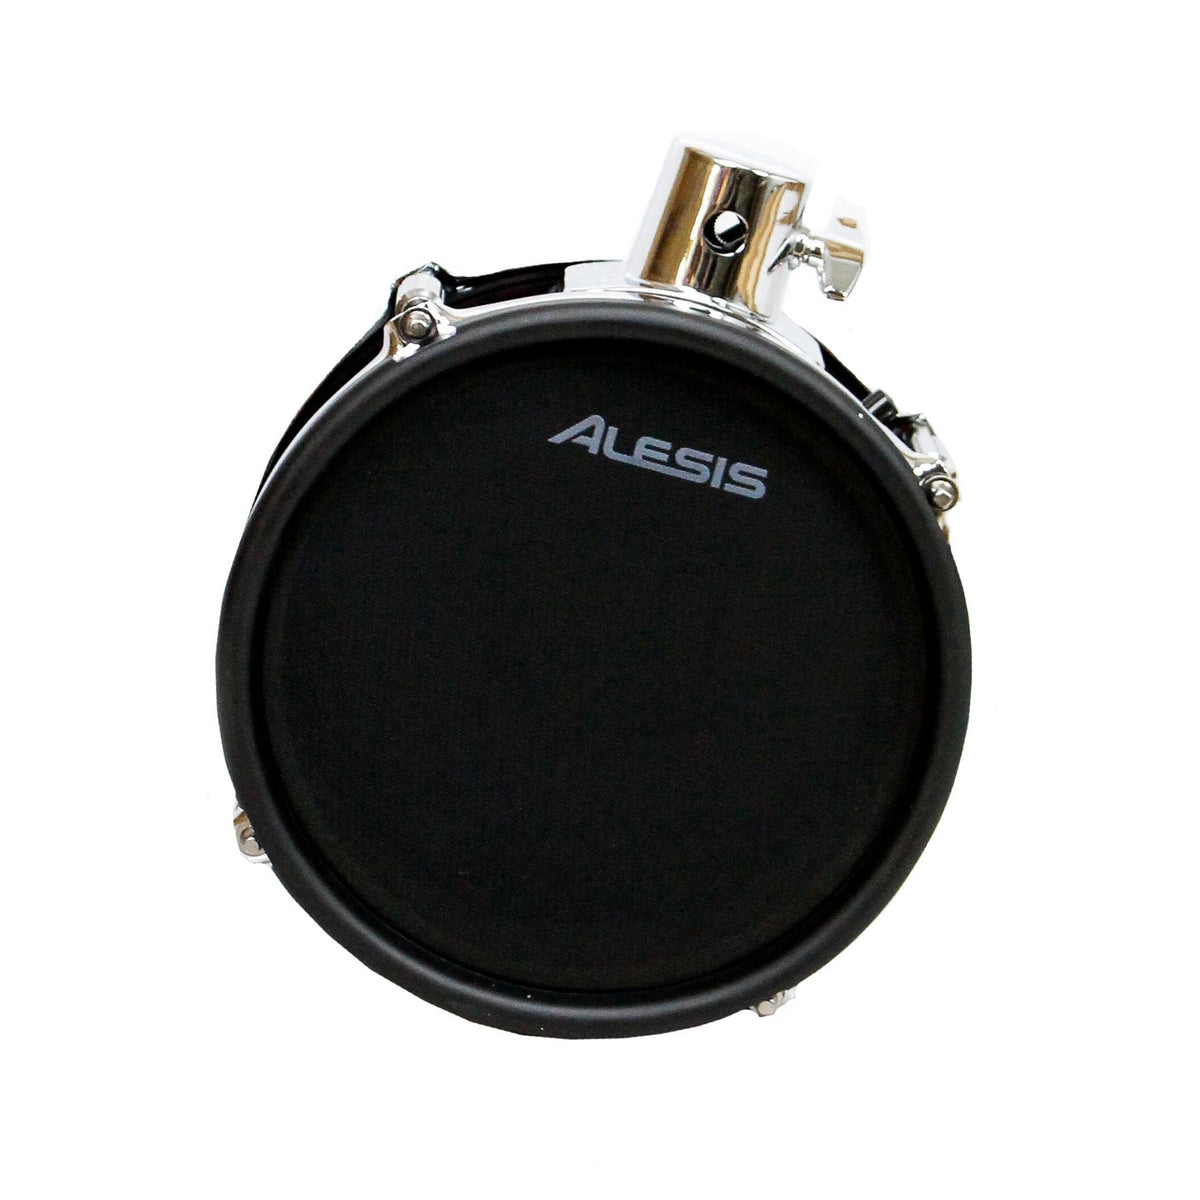 "Alesis 8"" Dual-Zone Mesh Drum Pad for Strike and Strike Pro Electronic Drum Kit"